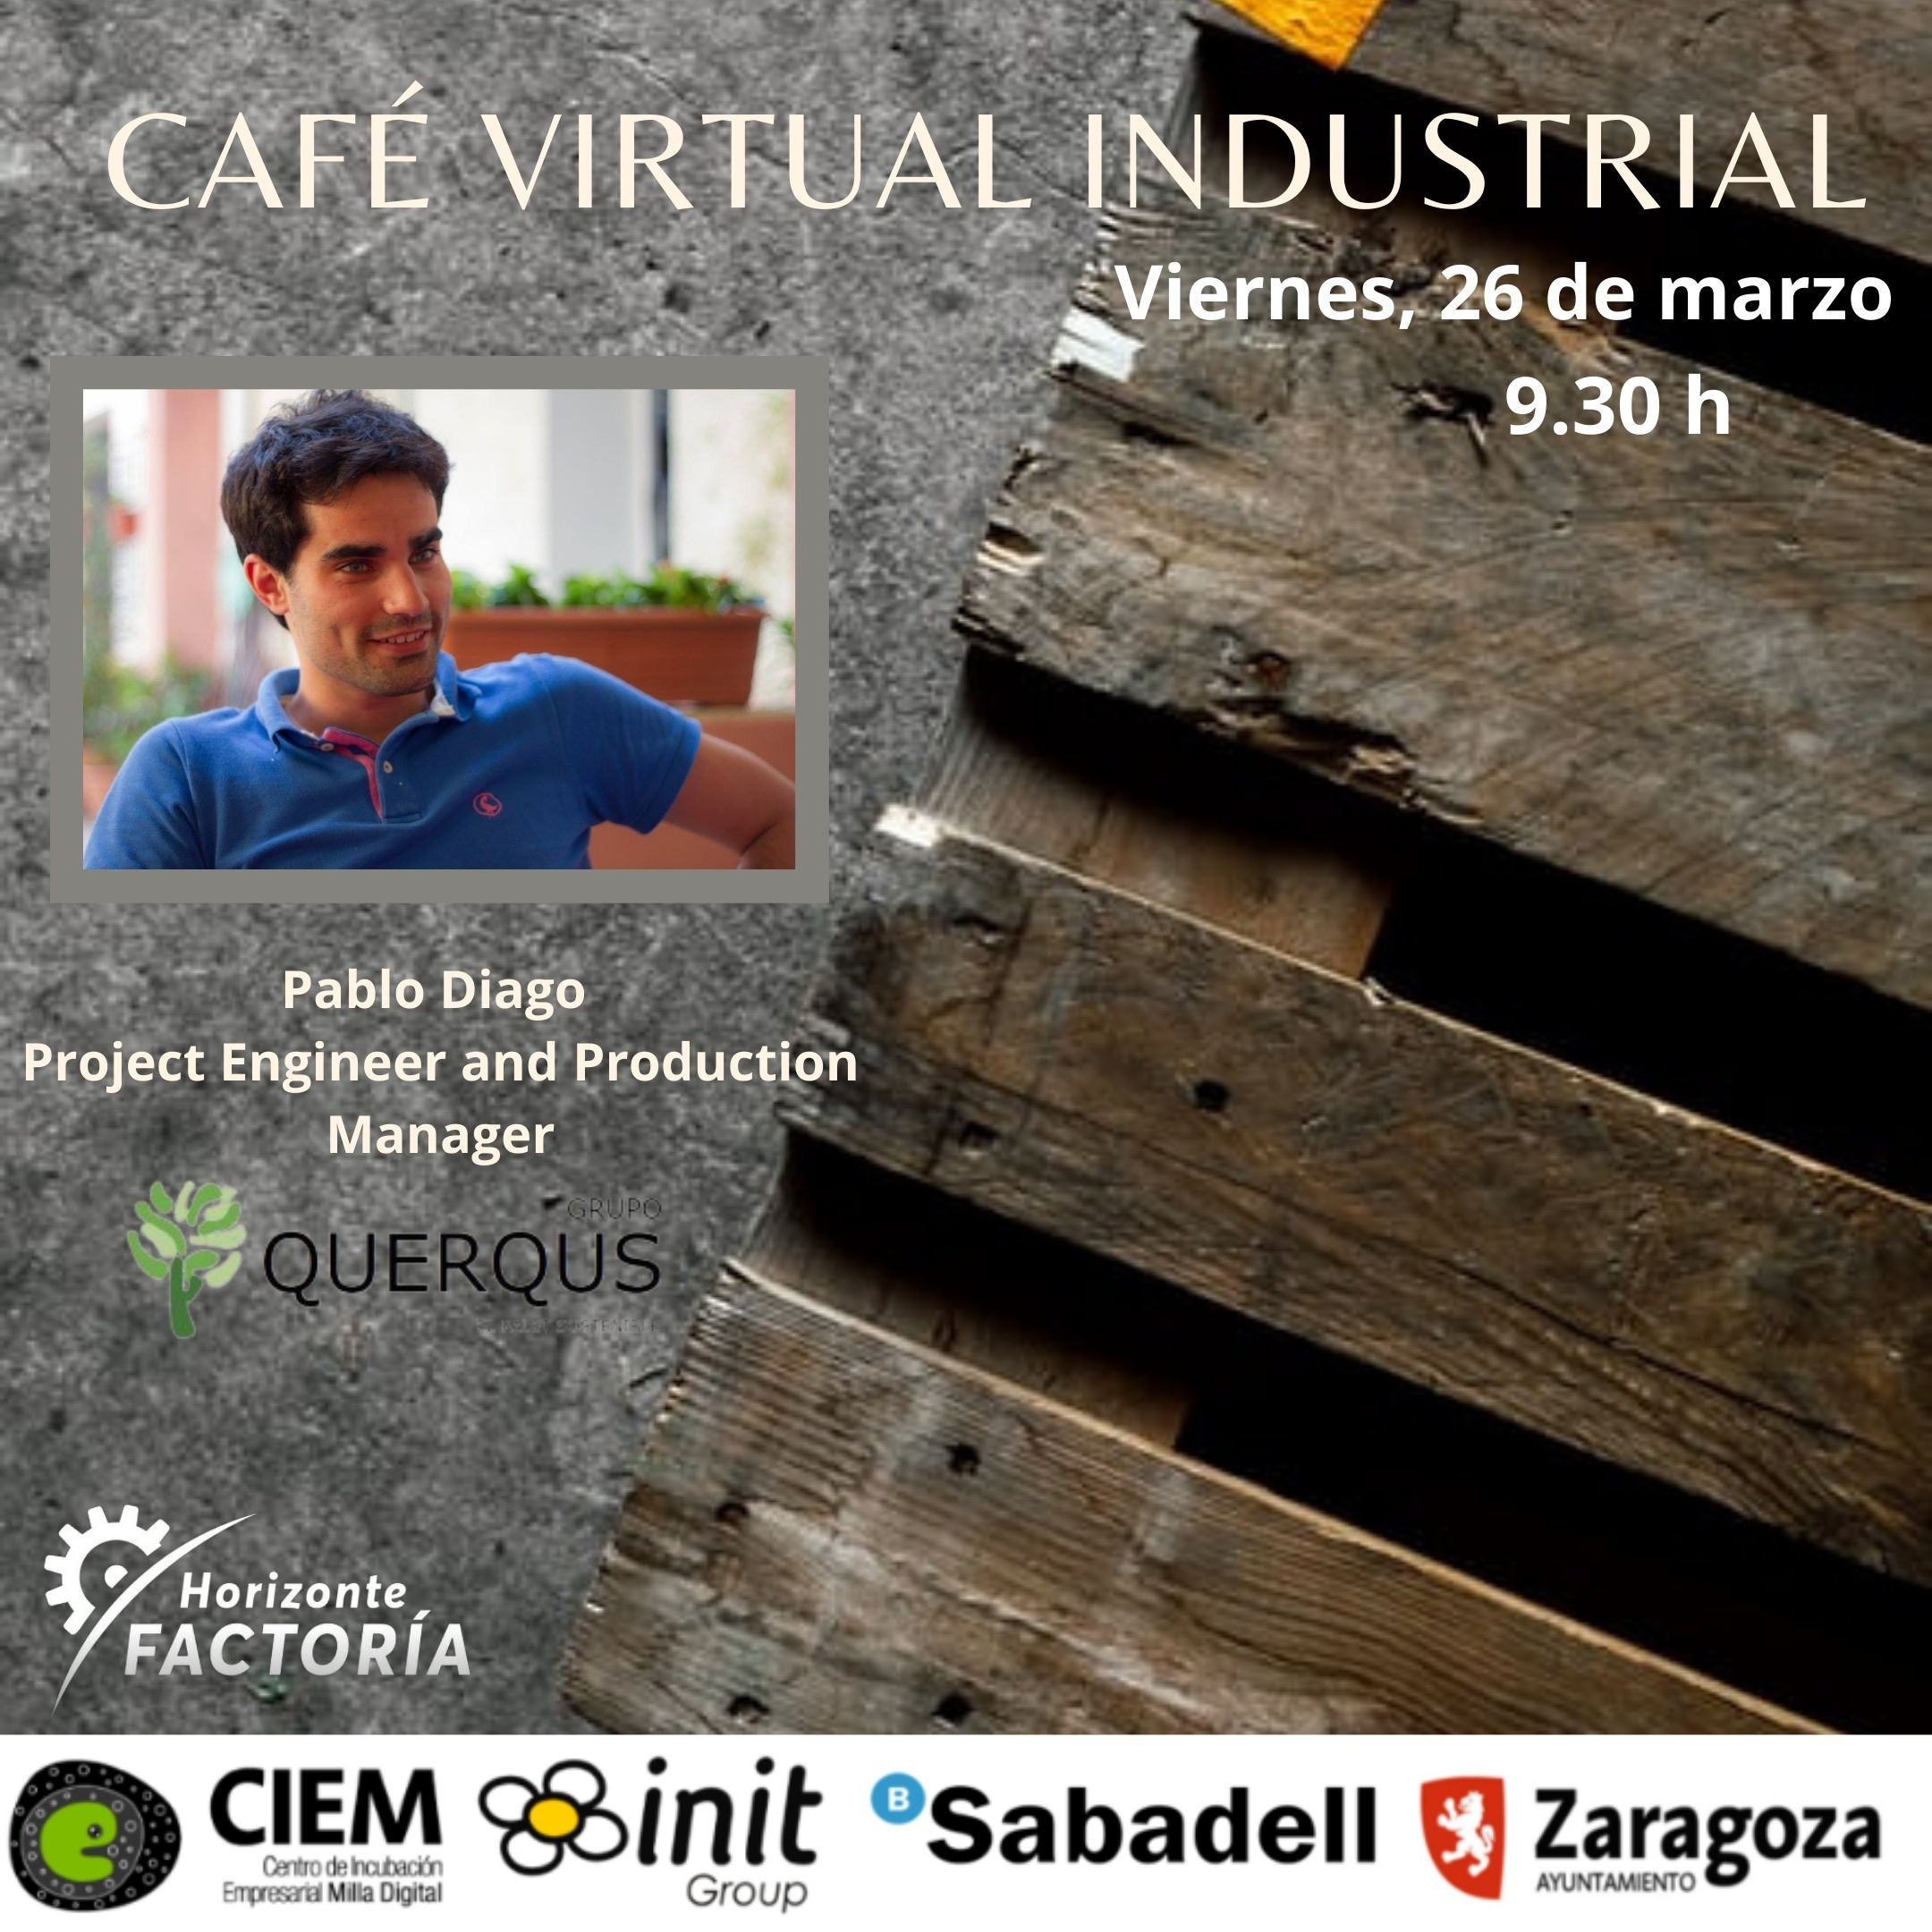 Café Virtual Industrial